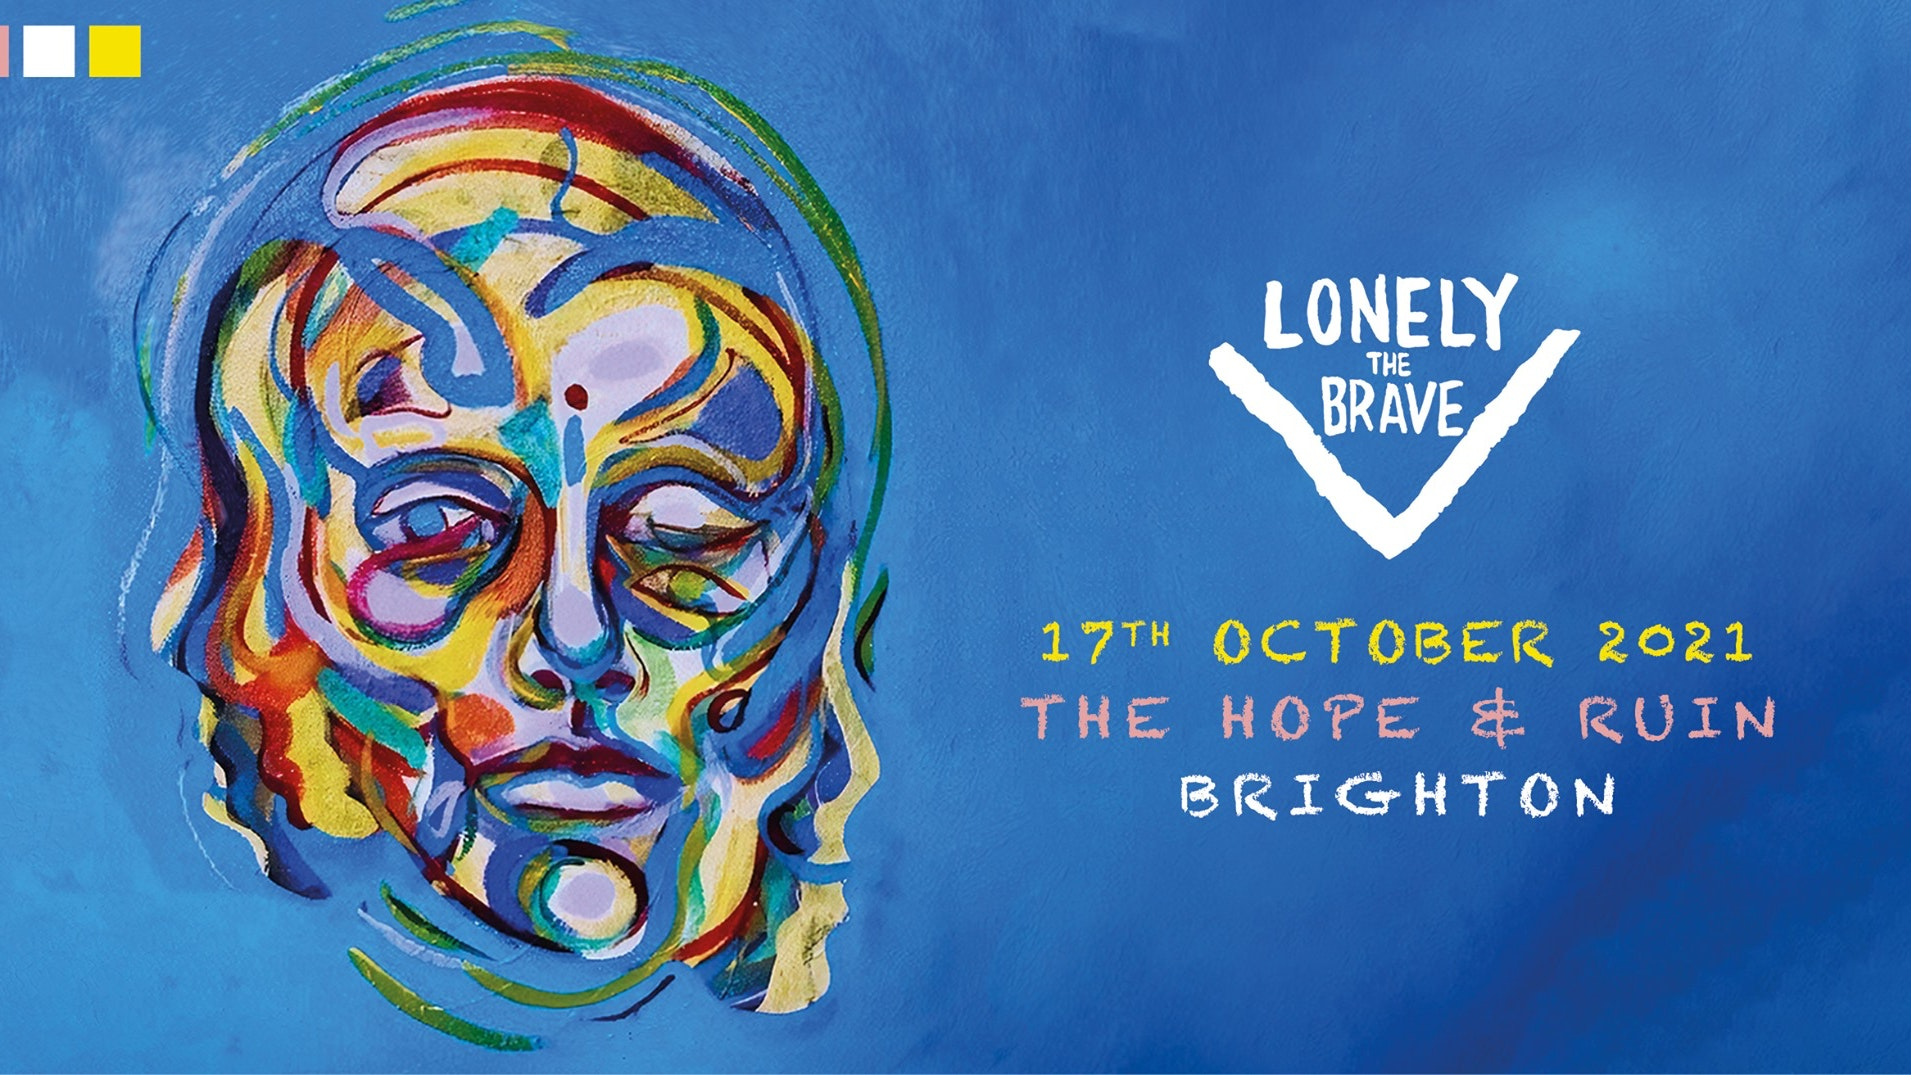 Lonely The Brave *SOLD OUT*